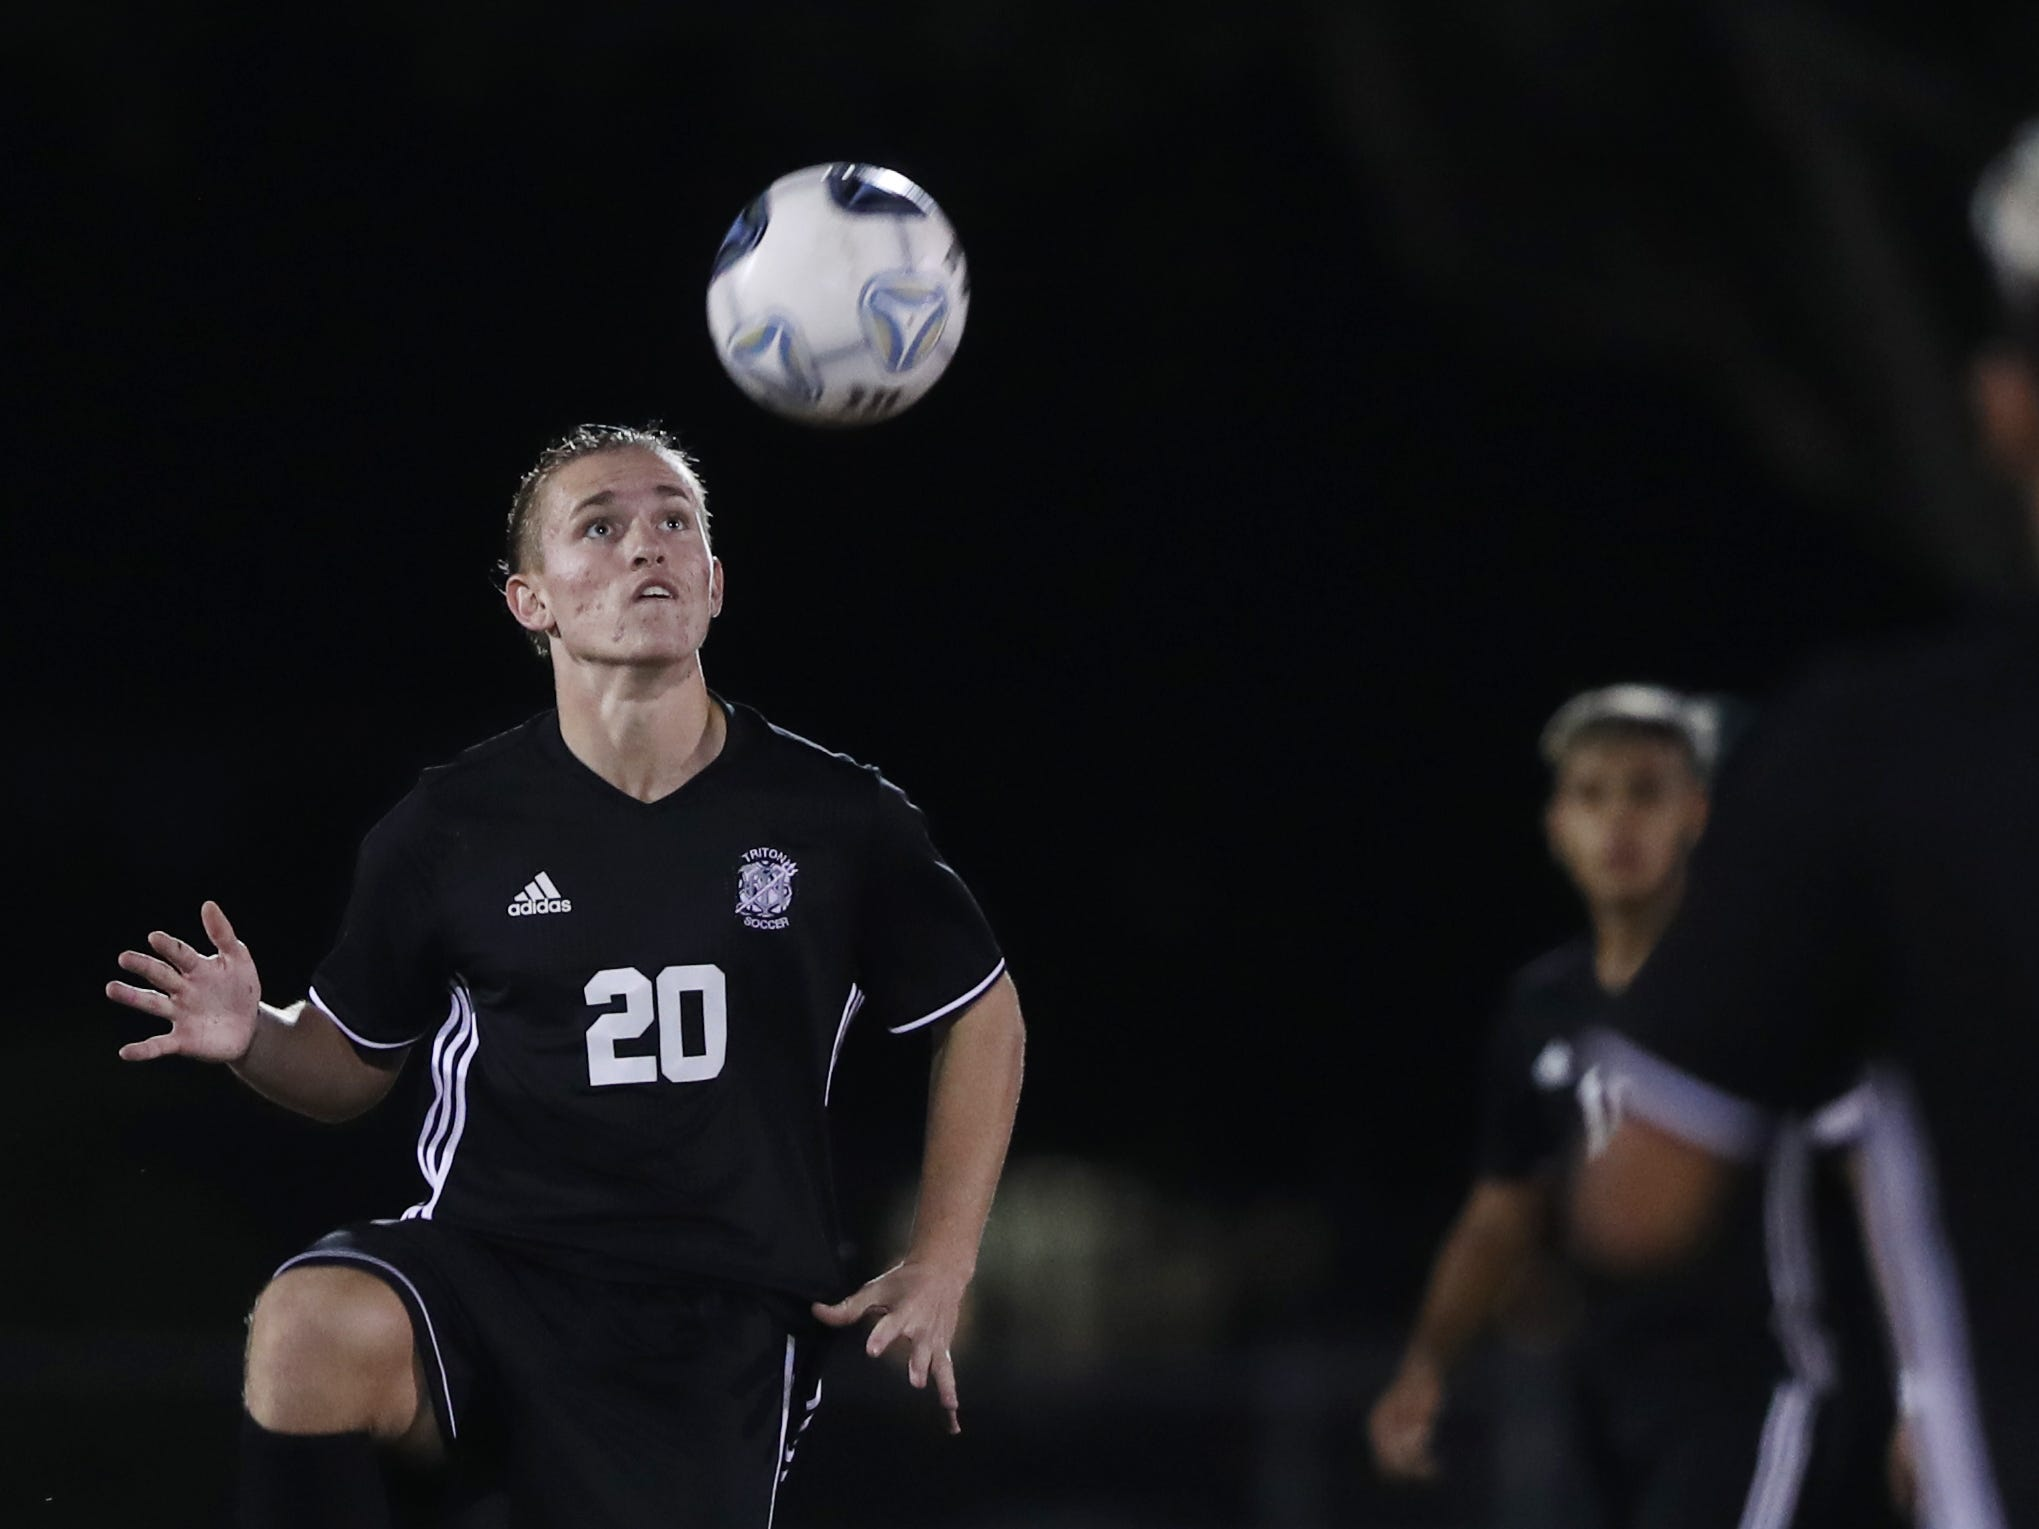 Mariner High School's Nikola Salopek tracks a pass against Immokalee on Wednesday in the Class 3A regional quarterfinal. Mariner beat Immokalee 2-0.